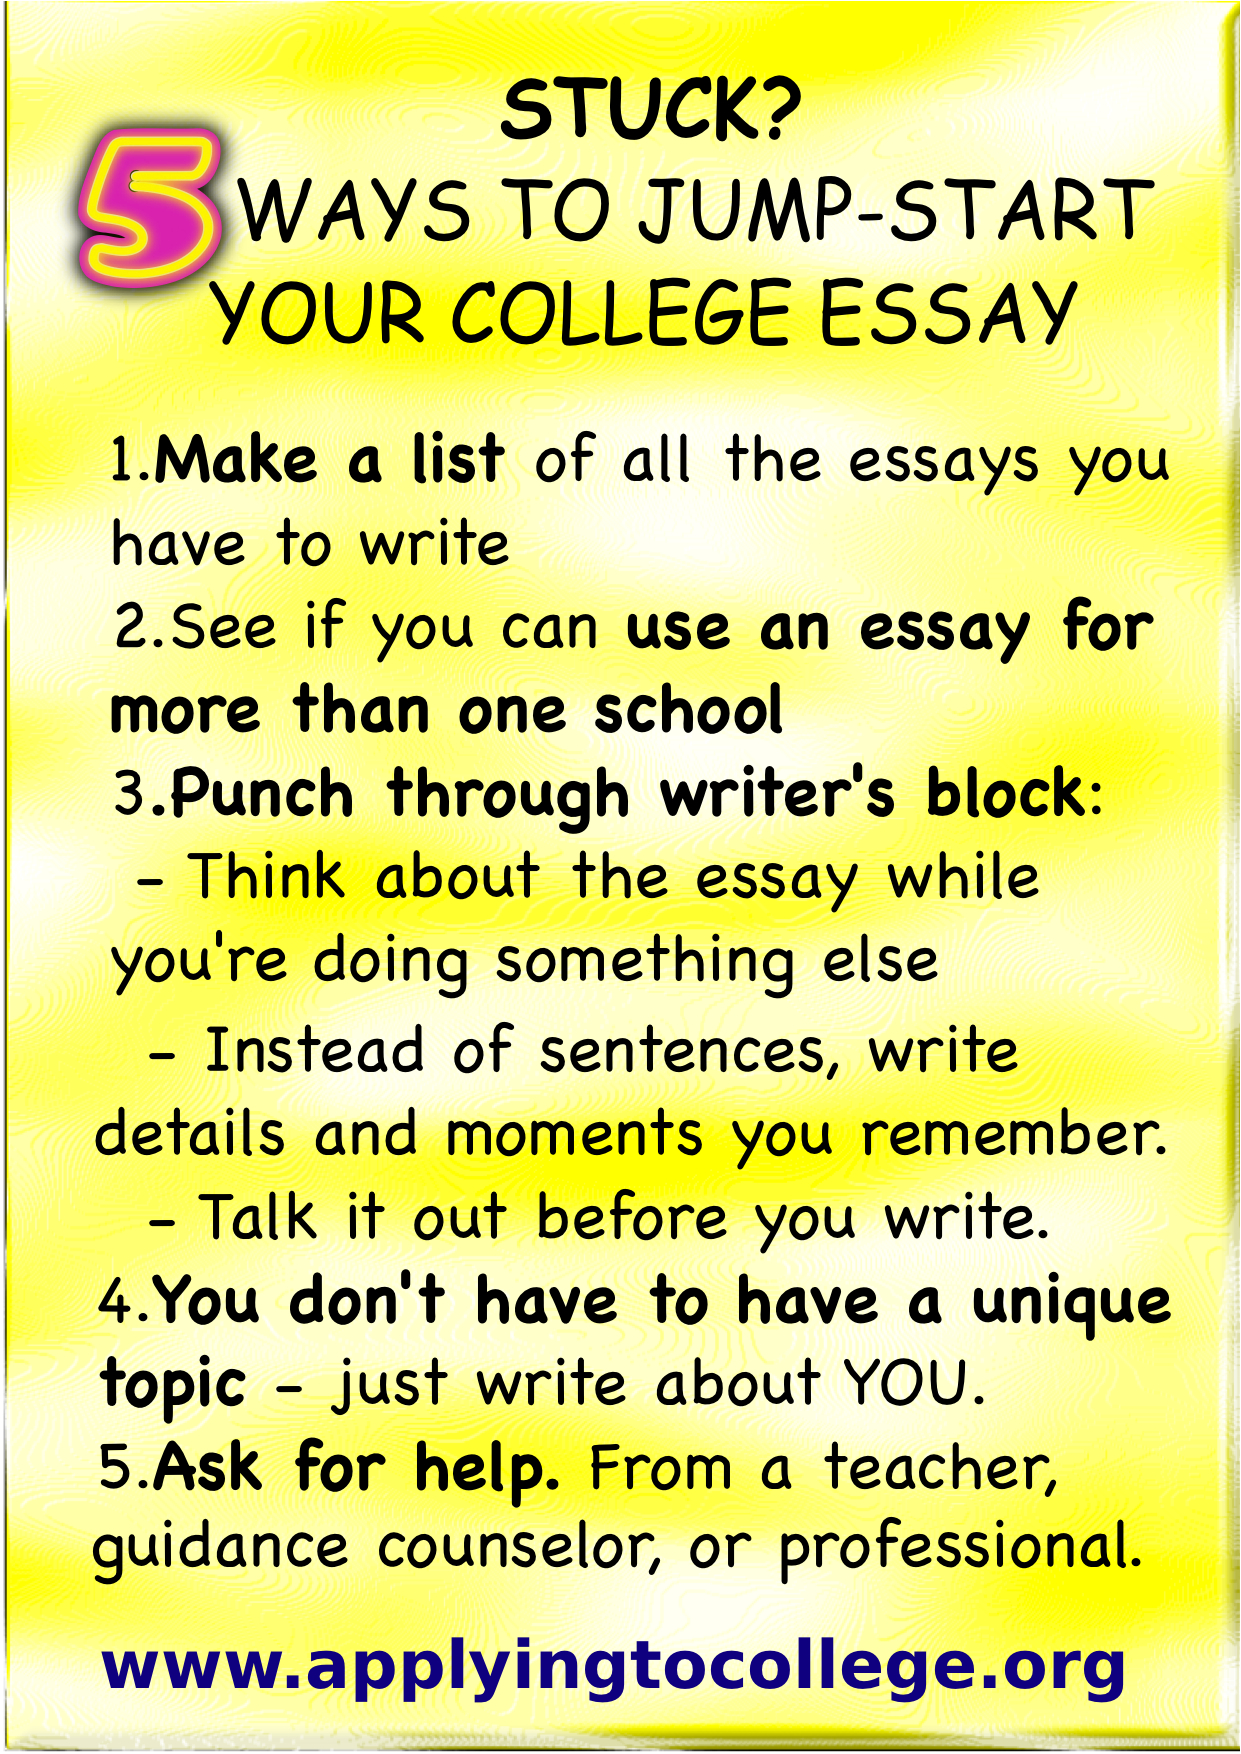 Other ways to say this essay will discuss